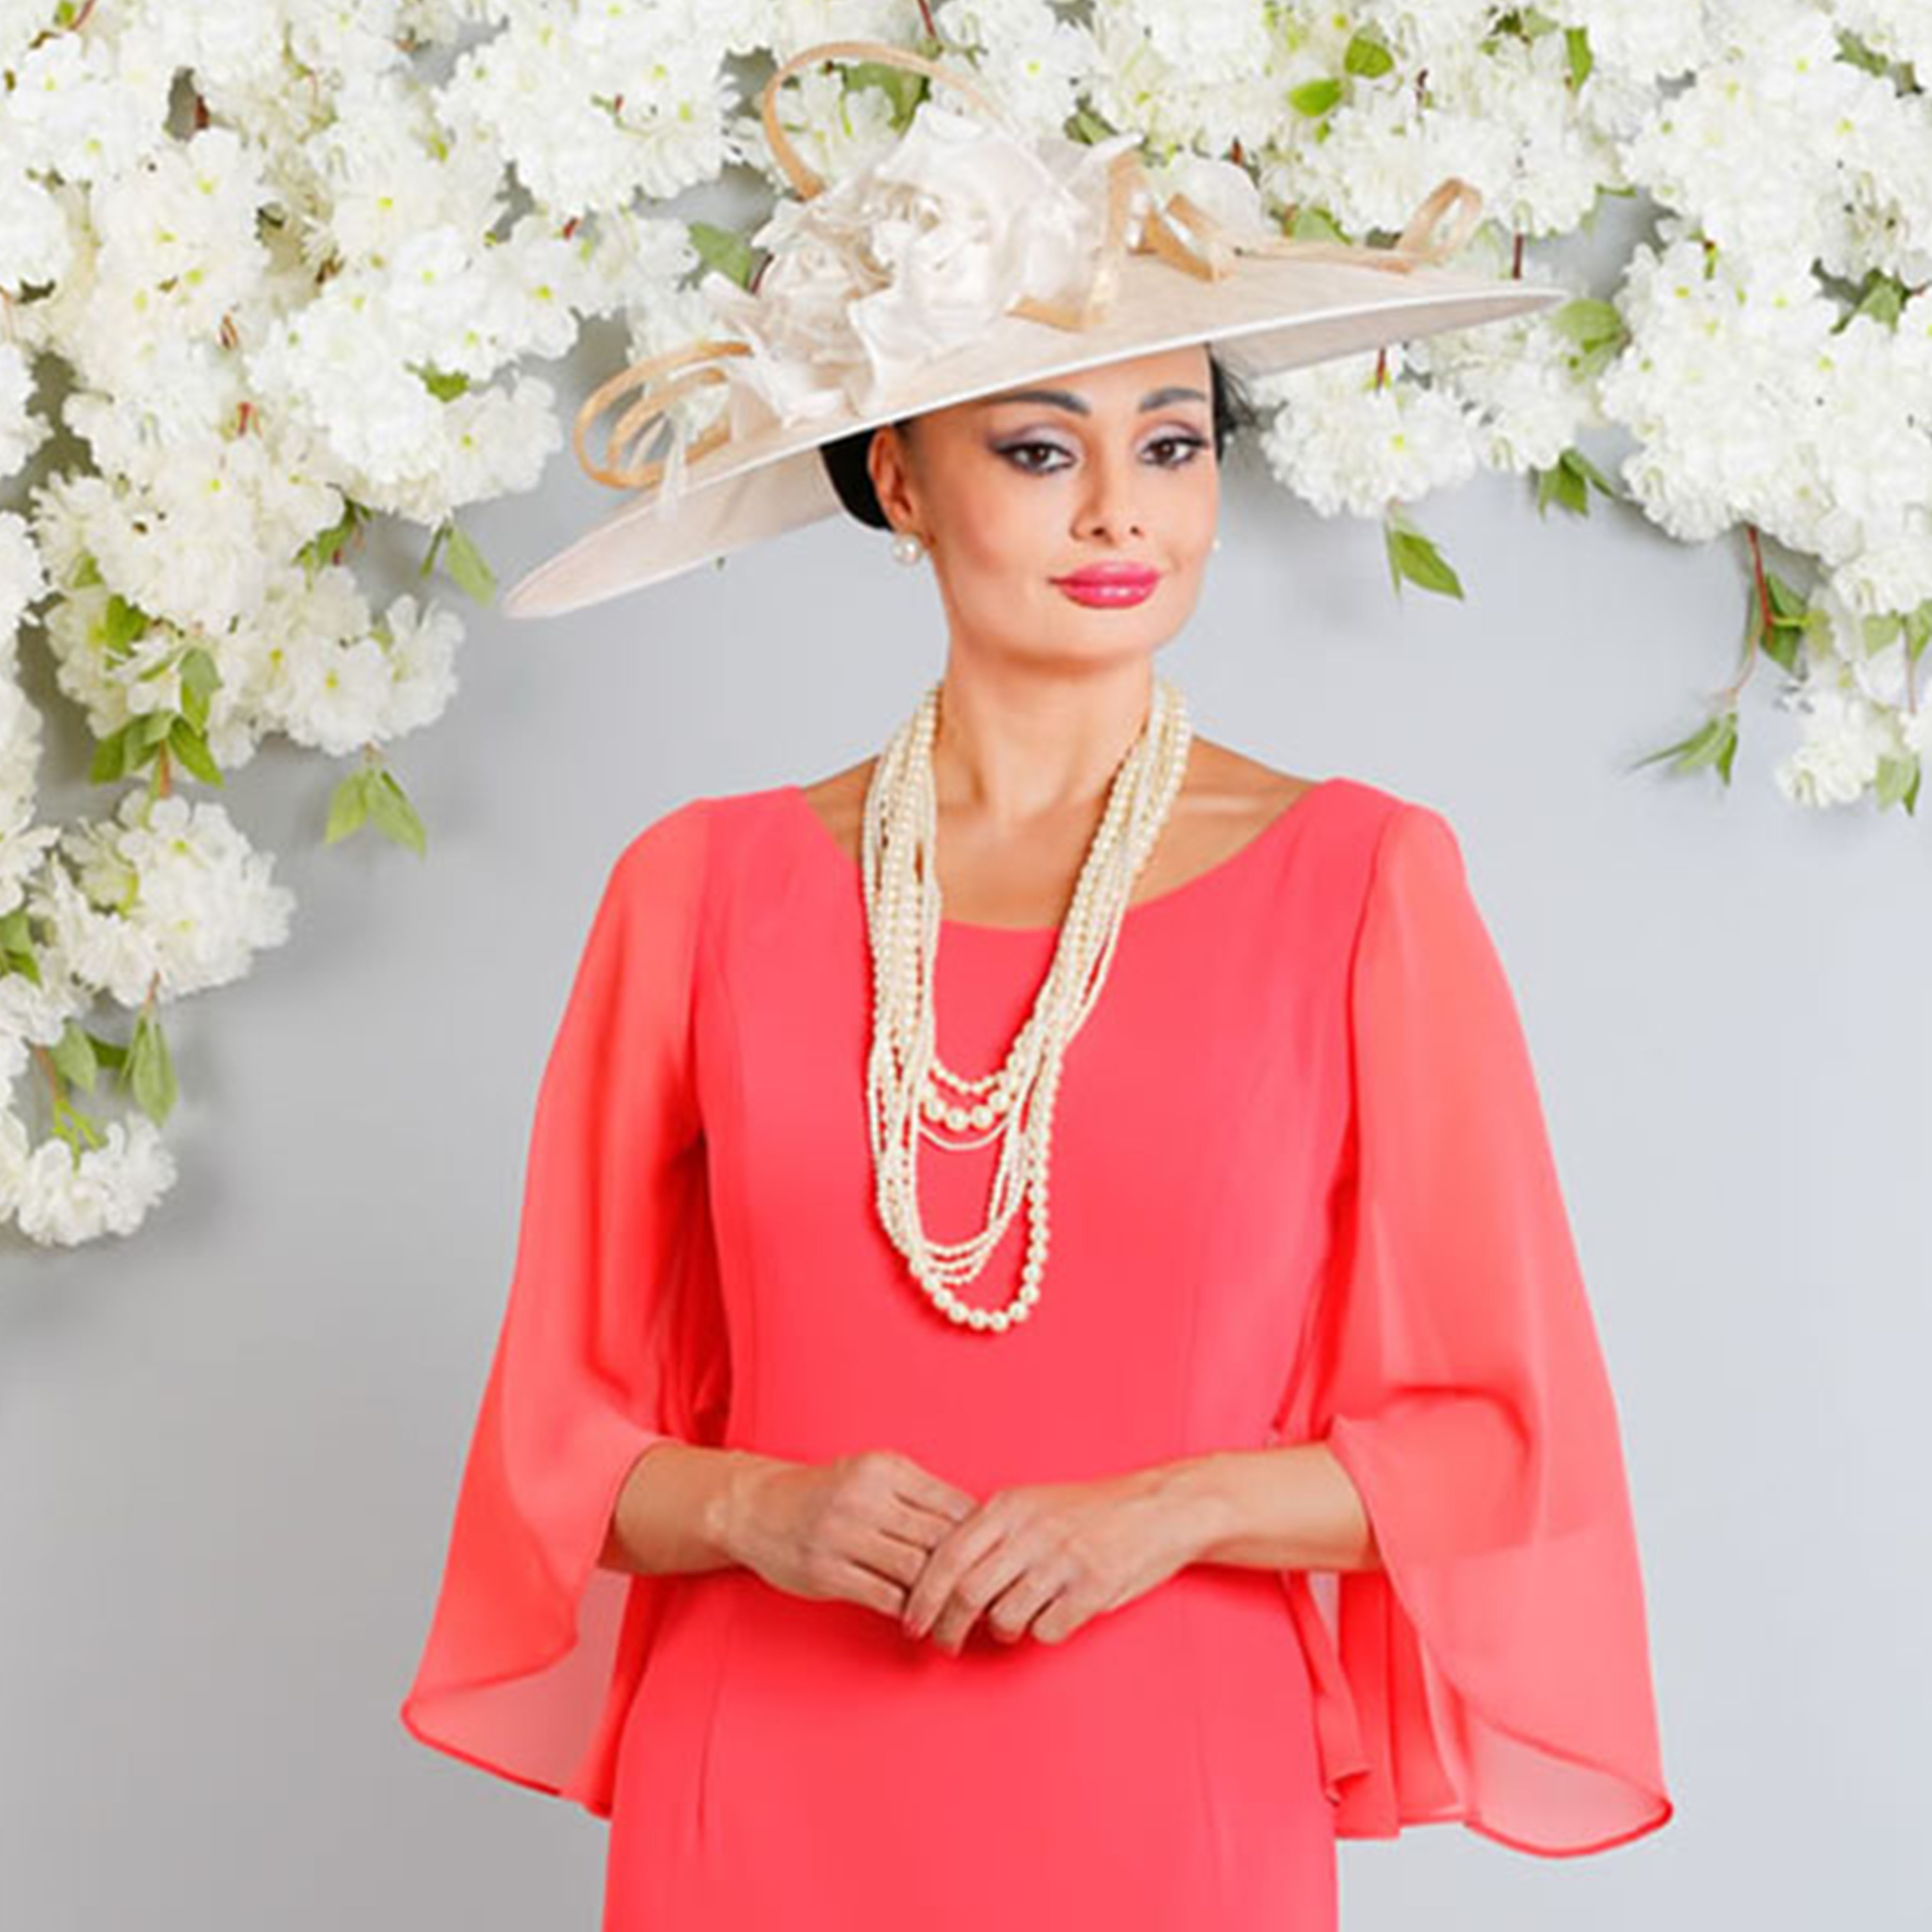 Claudia C and Luid Civit Occasion Wear for Mother of the Bride and Groom